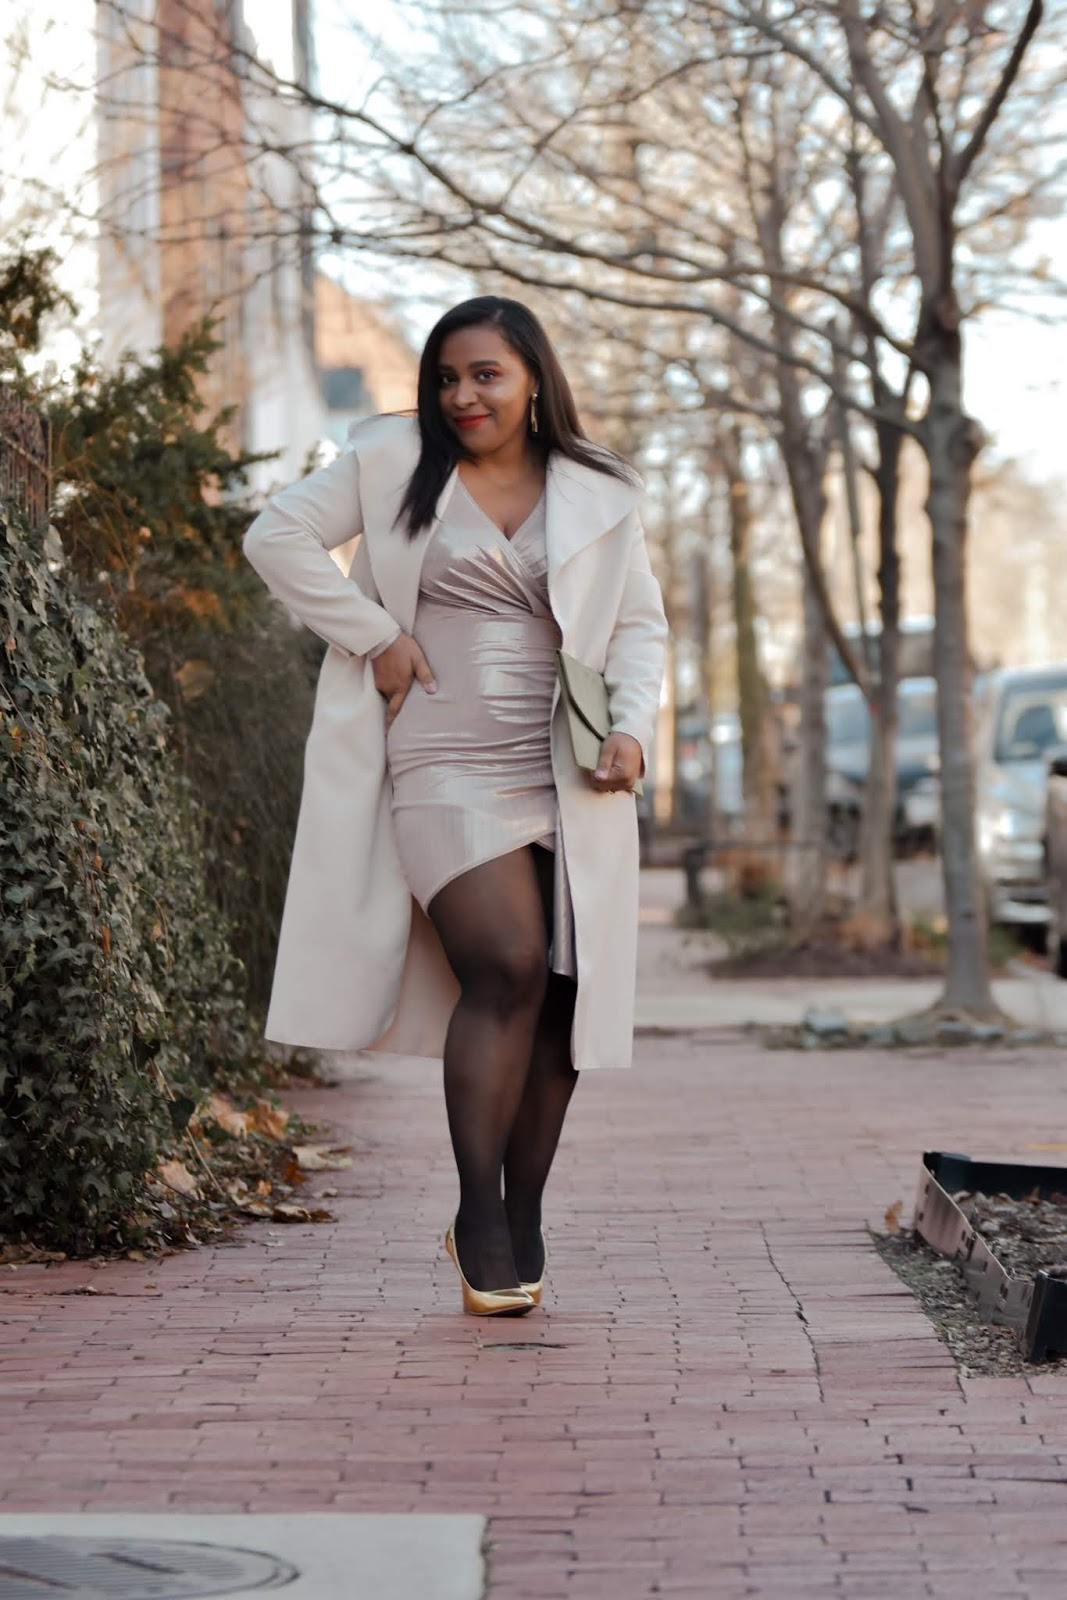 new years eve, nye, new ywars dress, holiday glam, gold shoes, neutral outfits, pattys kloset, stylish moms